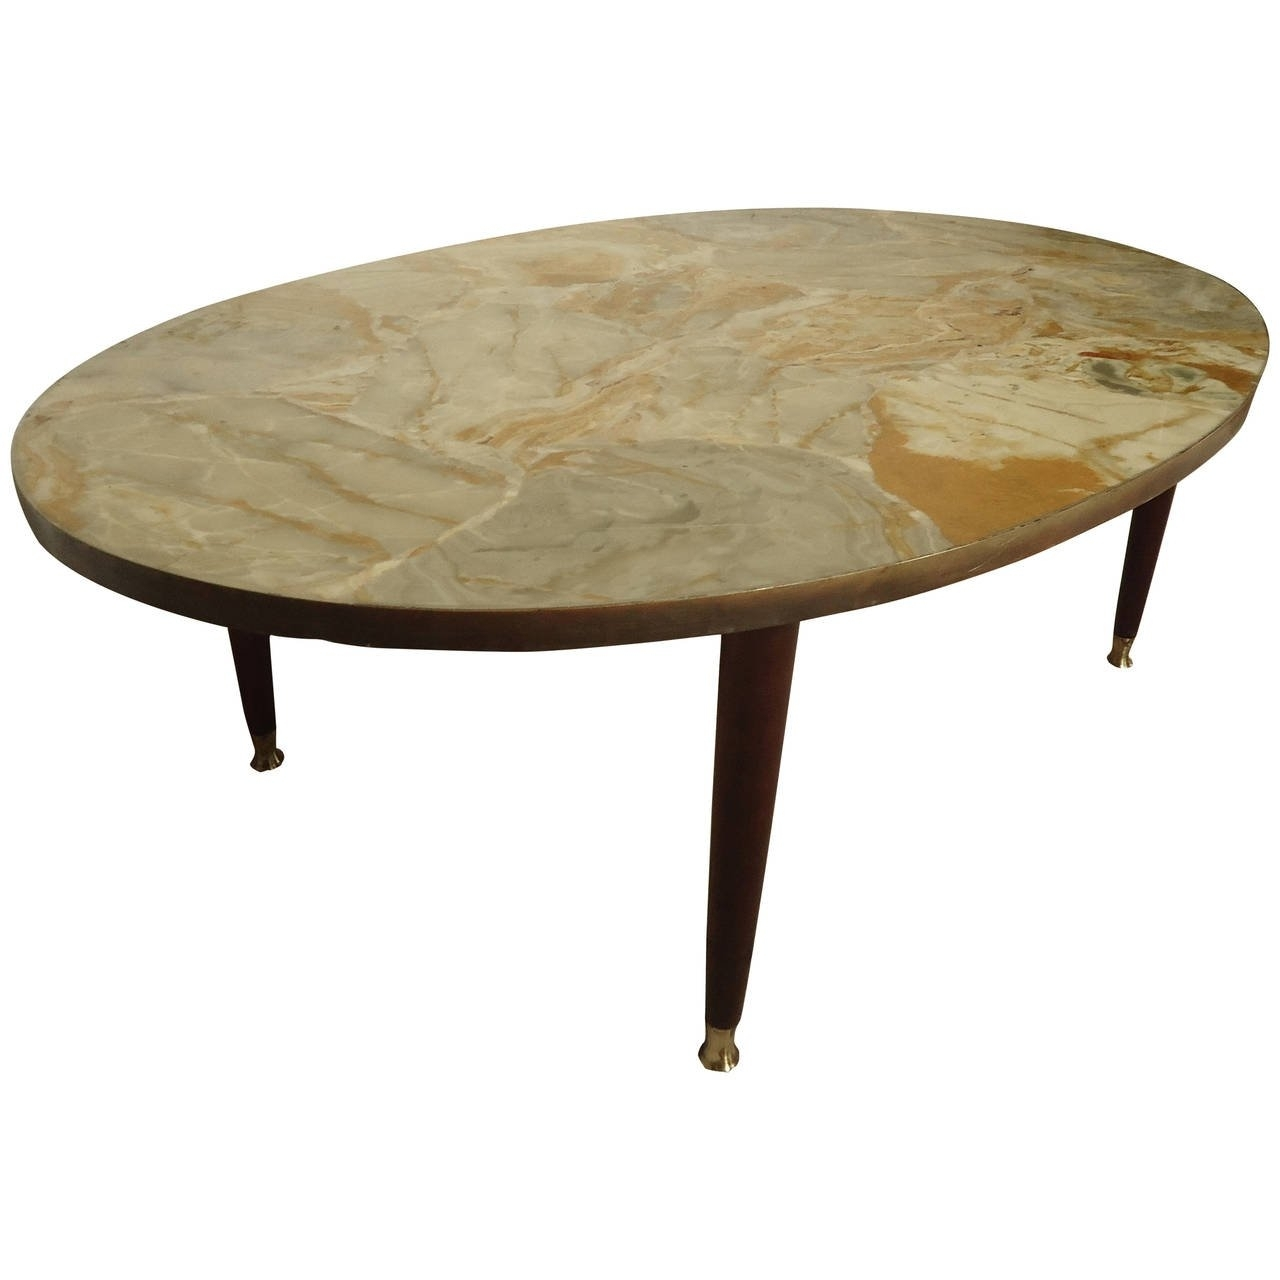 Mid-Century Modern Italian Marble-Top Coffee Table For Sale At 1Stdibs intended for Mid-Century Modern Marble Coffee Tables (Image 22 of 30)